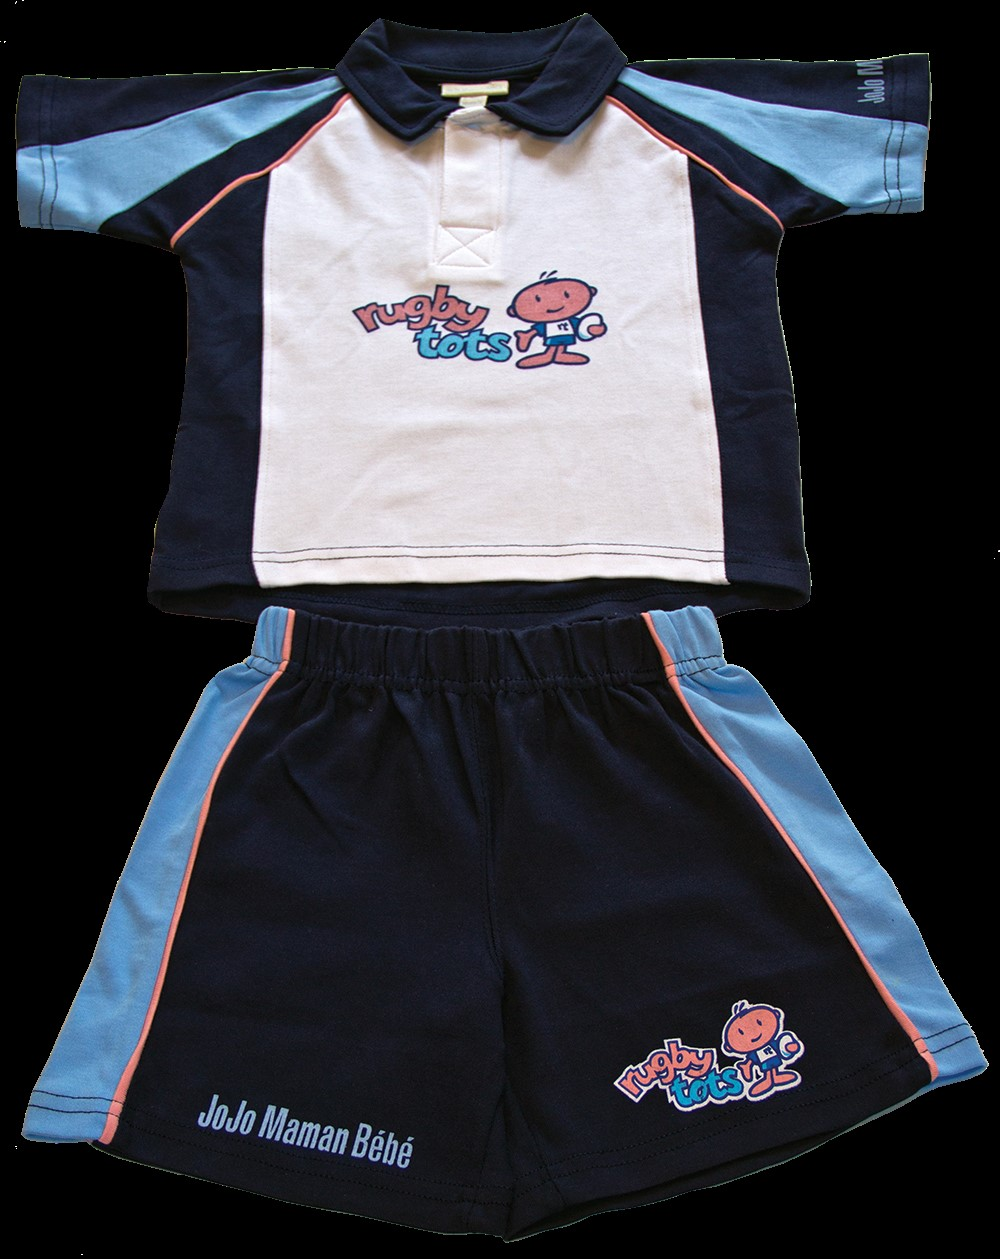 Rugbytots Kit